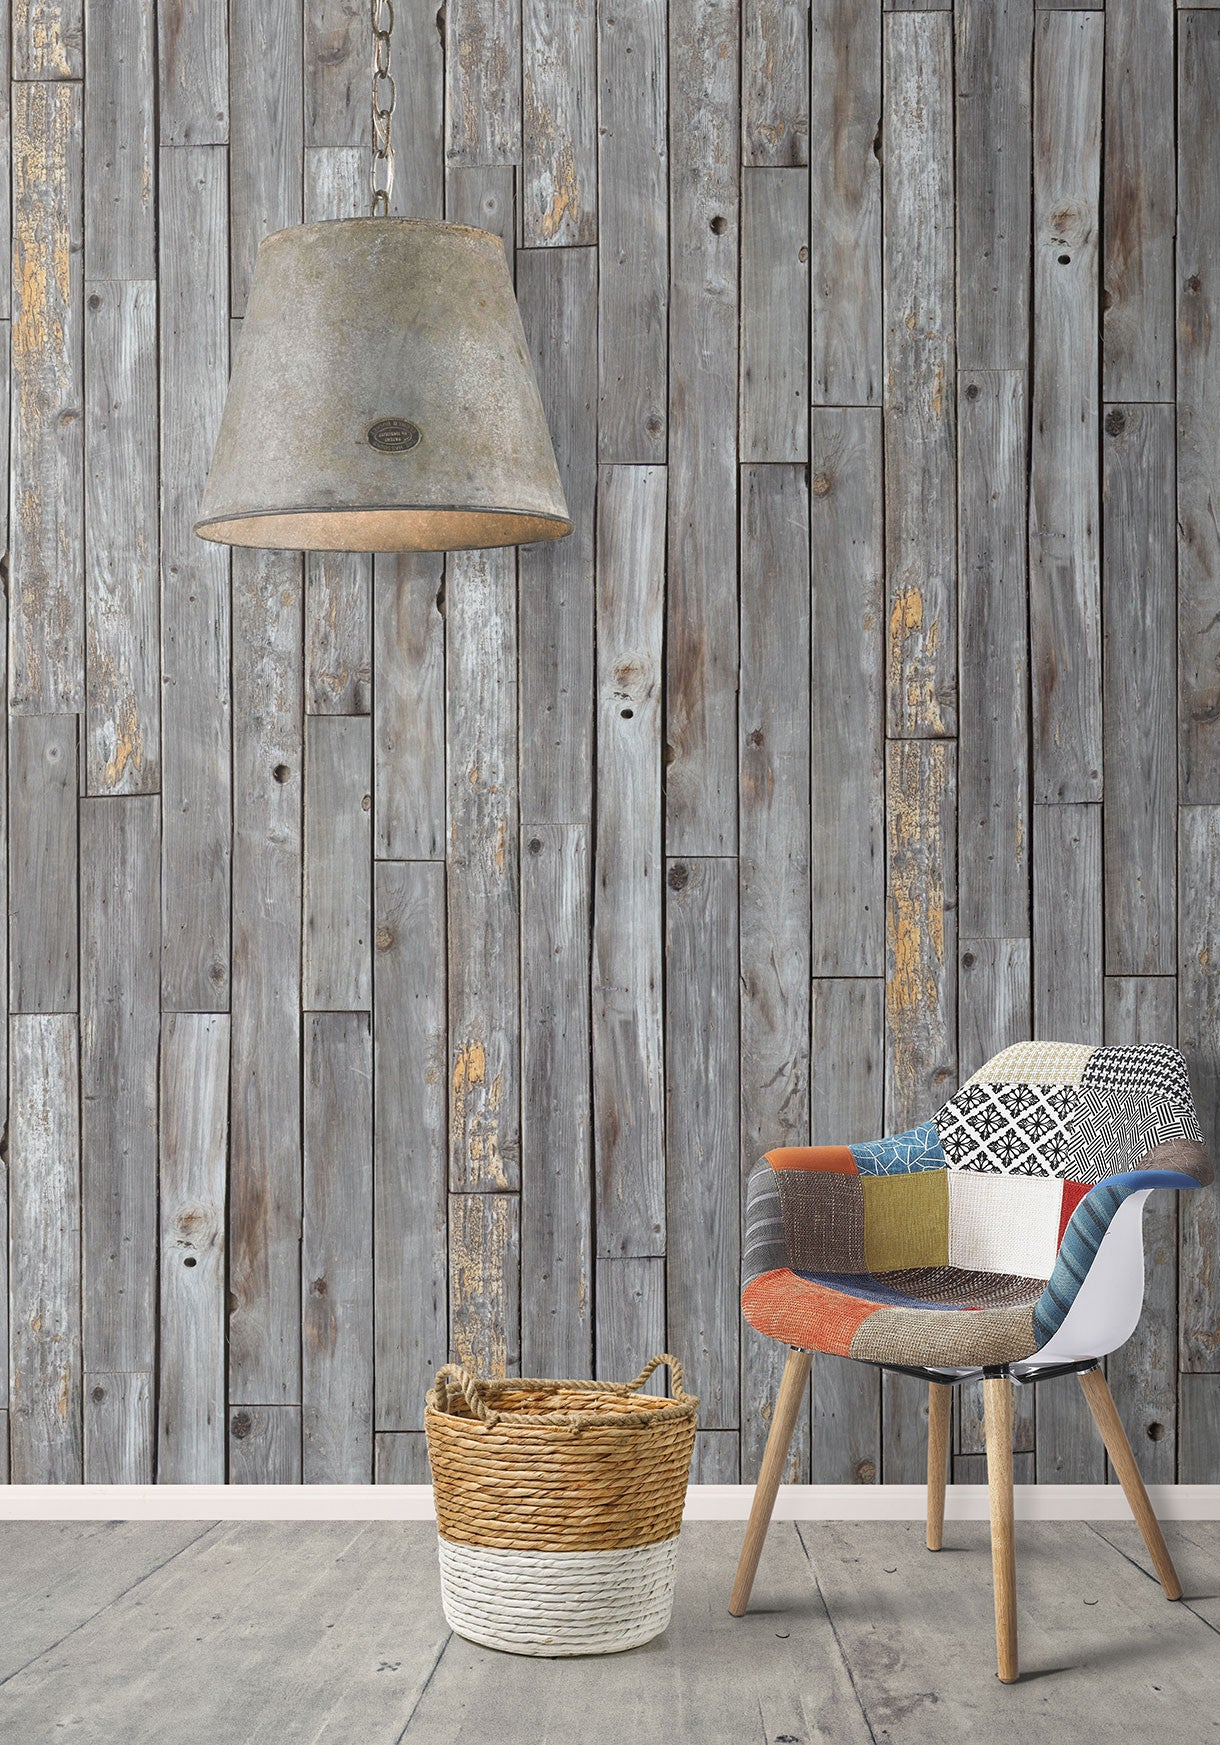 Wood Paneled Room Design: Rustic Wood Panels Wallpaper Design By Milton & King